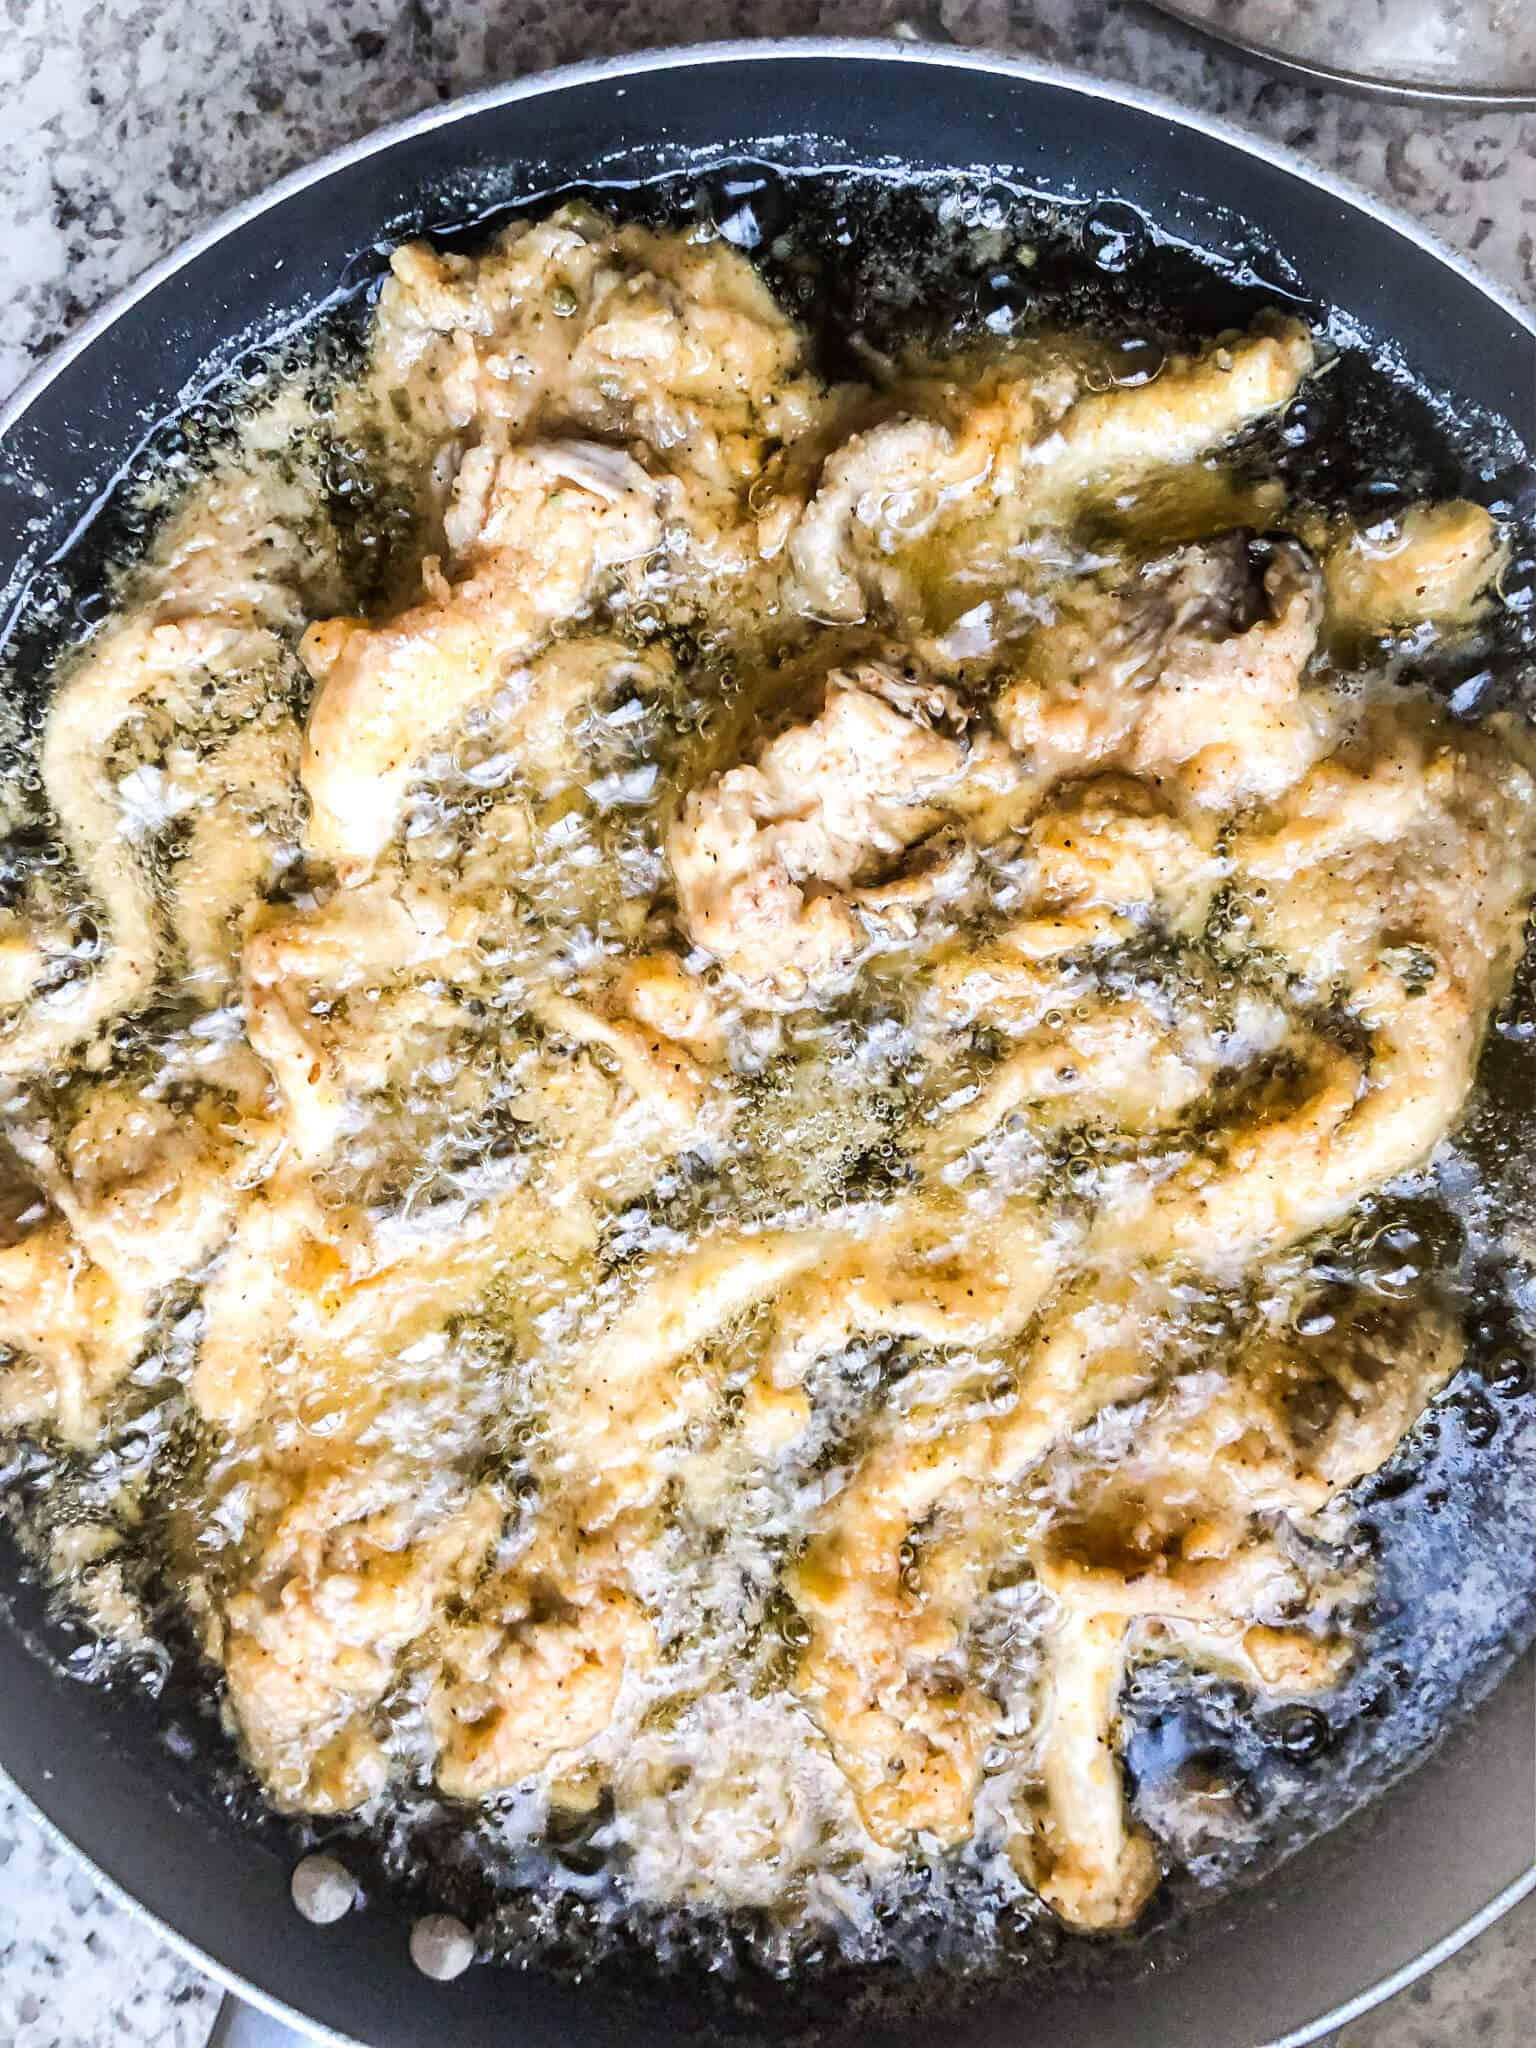 Fried Oyster Mushrooms